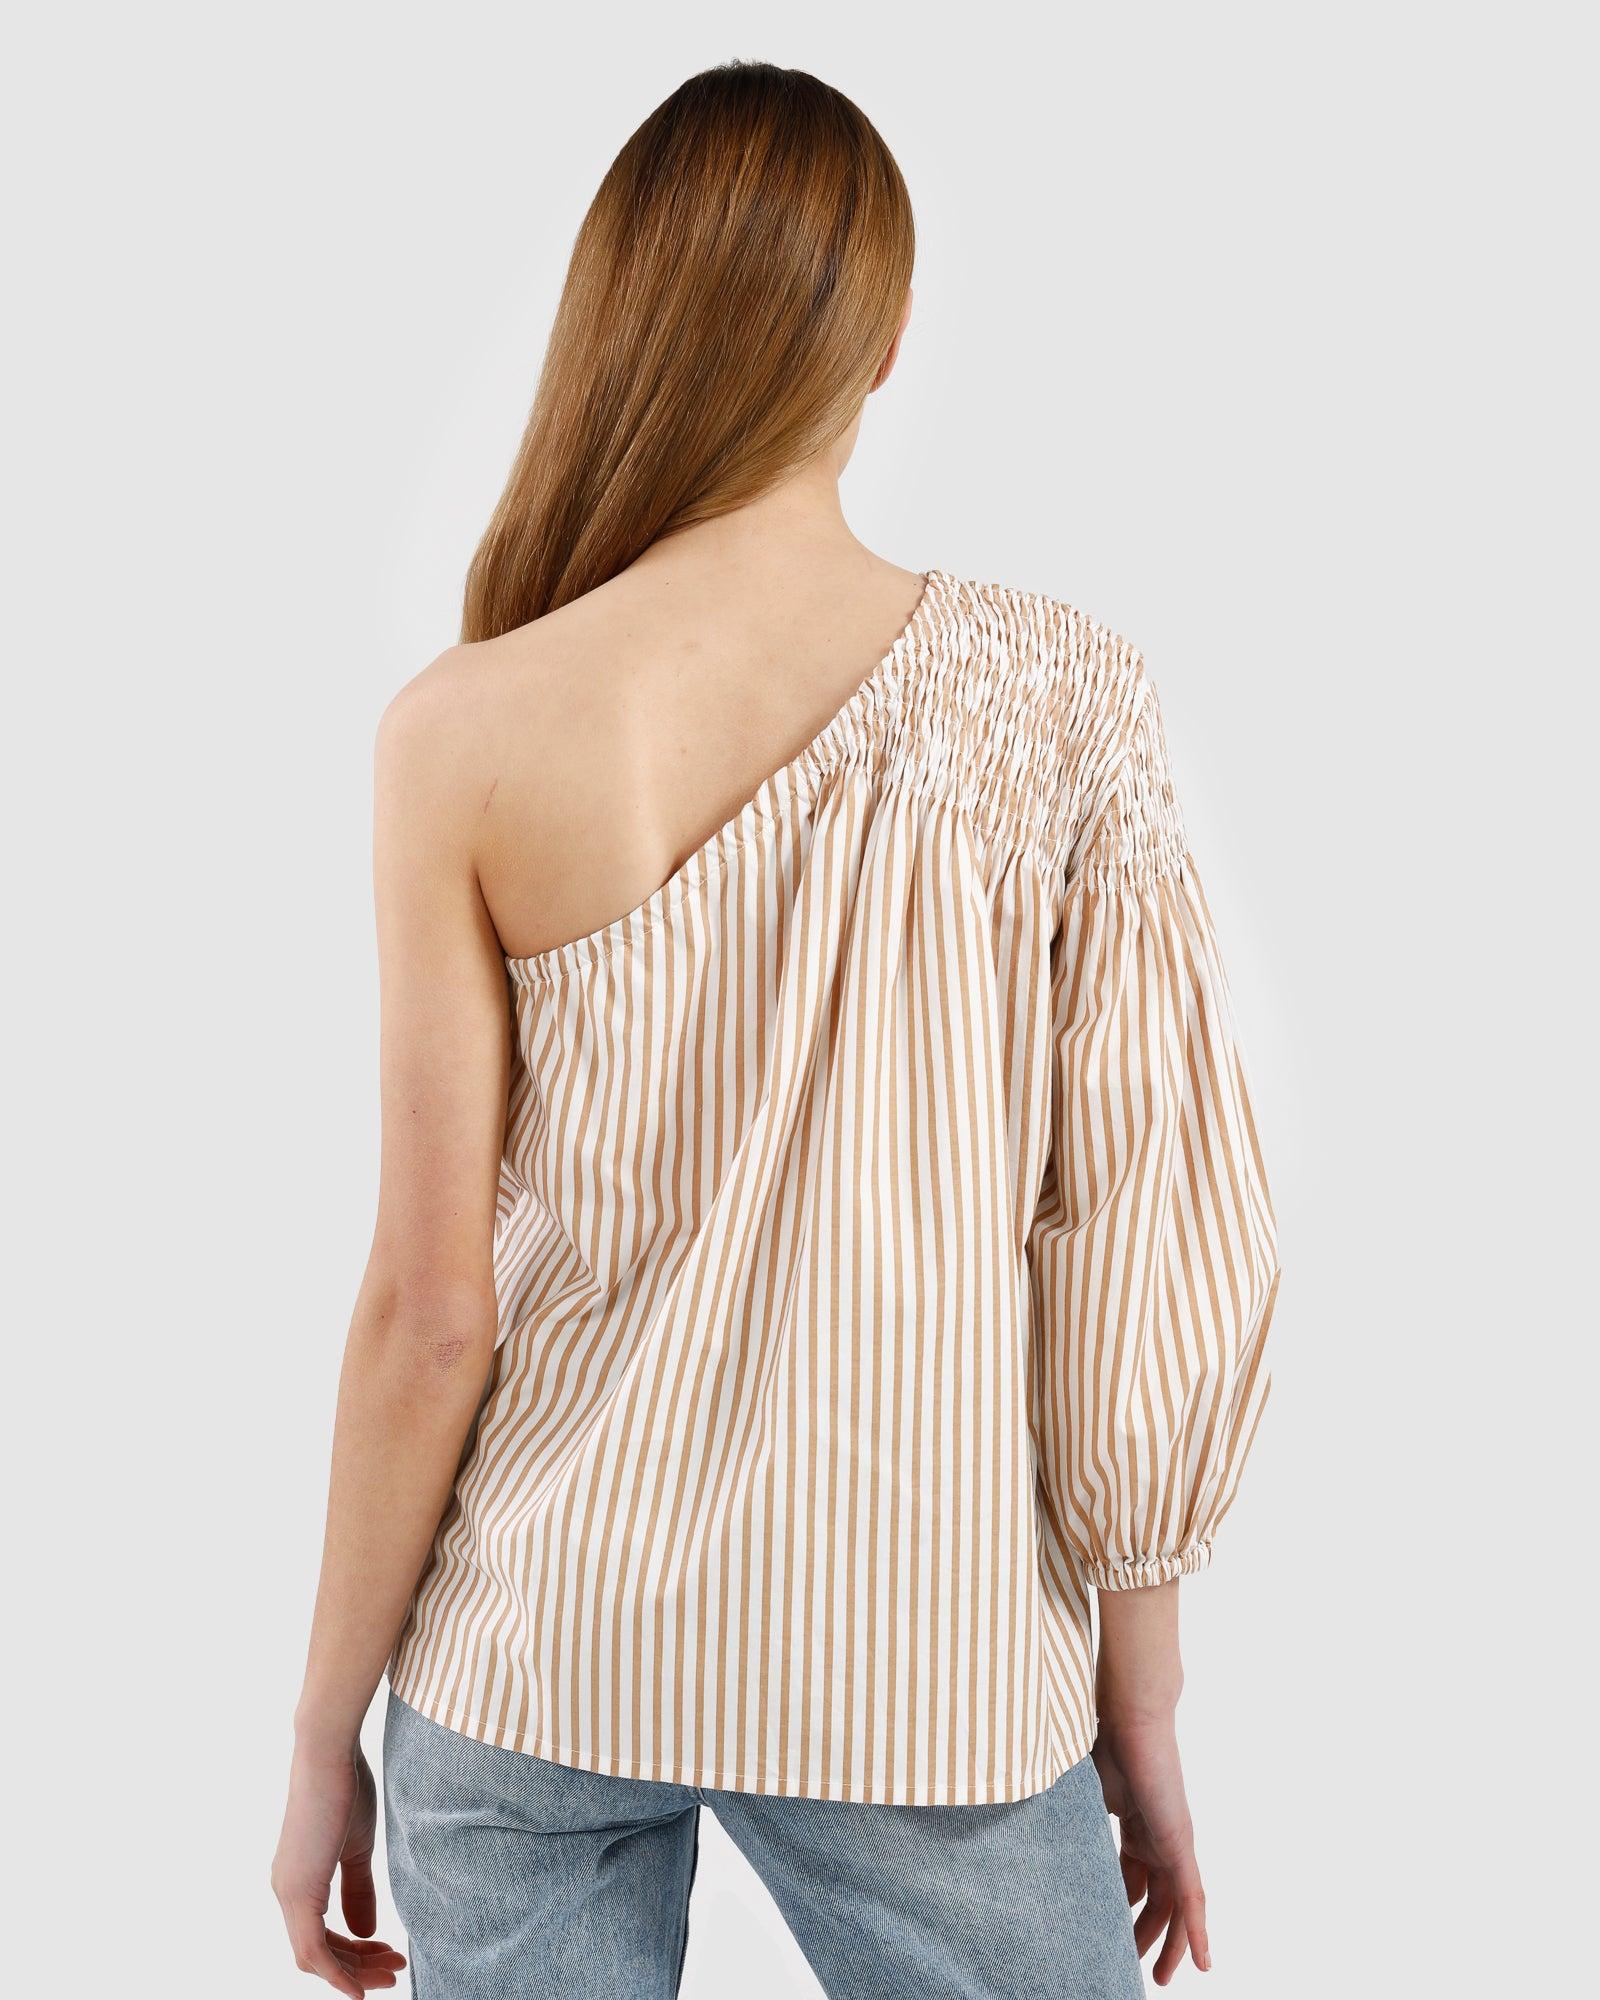 Louise Top / Canary Stripe